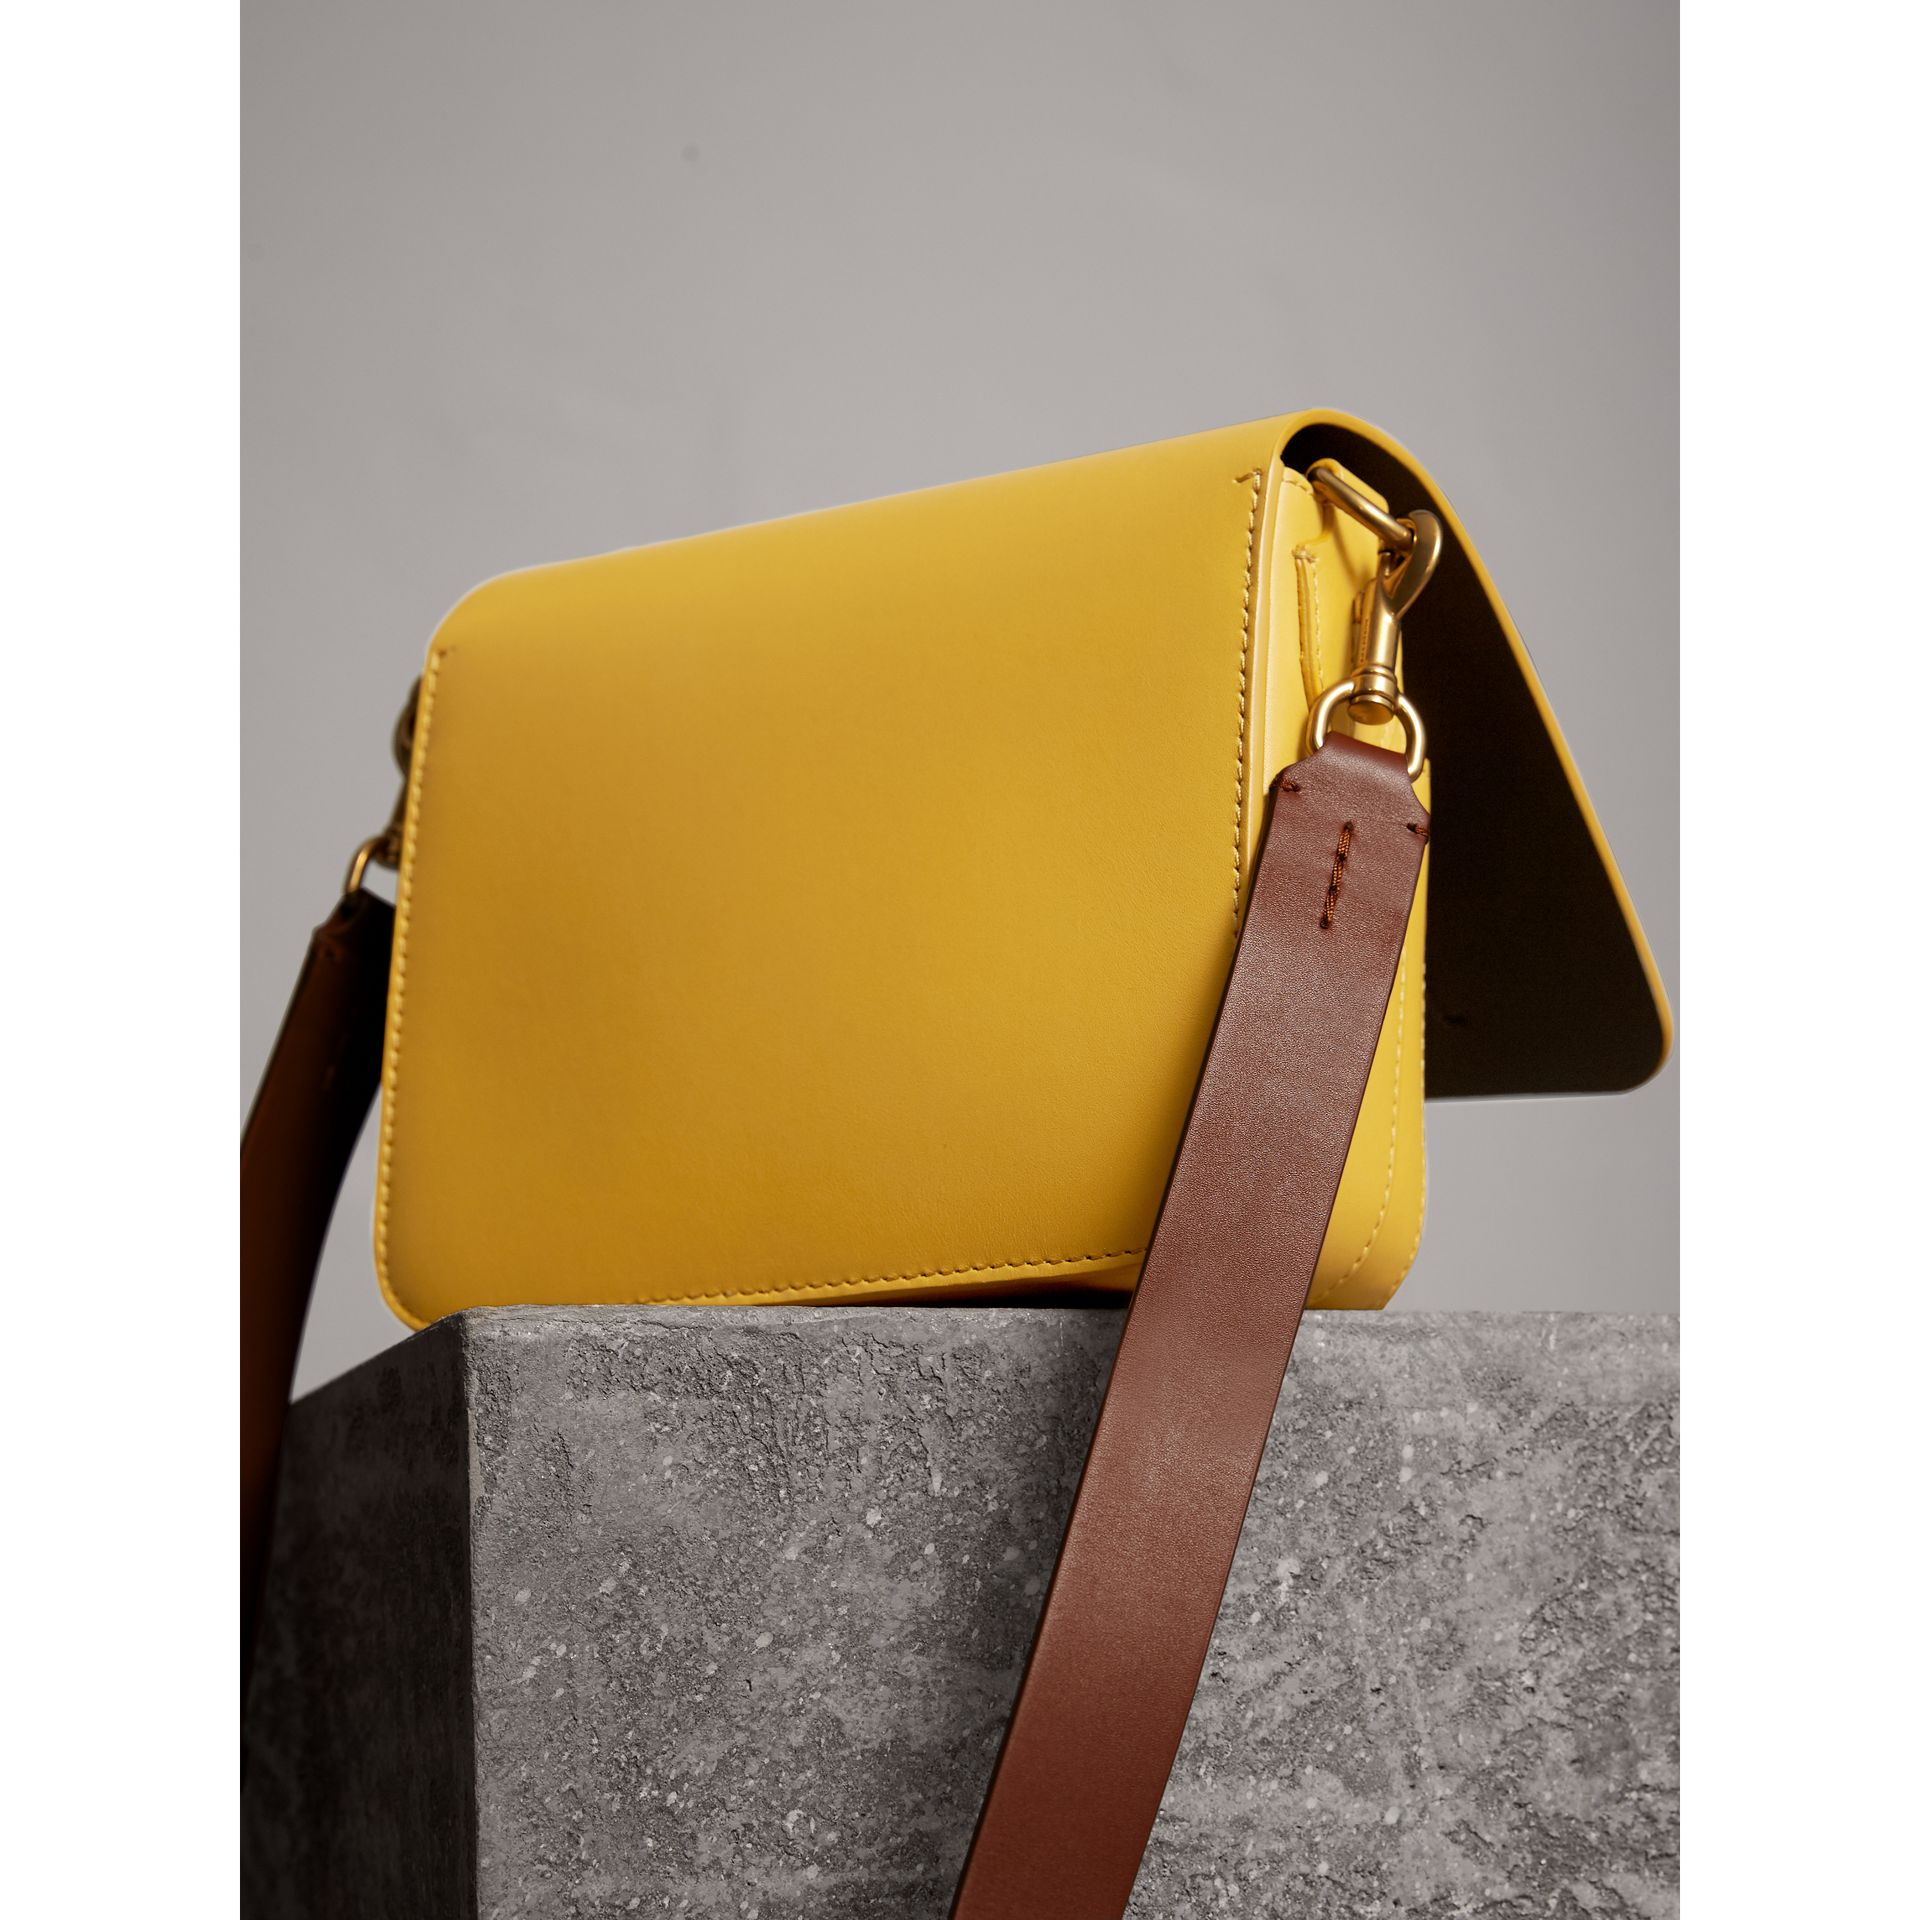 The Square Satchel in Leather in Larch Yellow - Women | Burberry Australia - gallery image 3